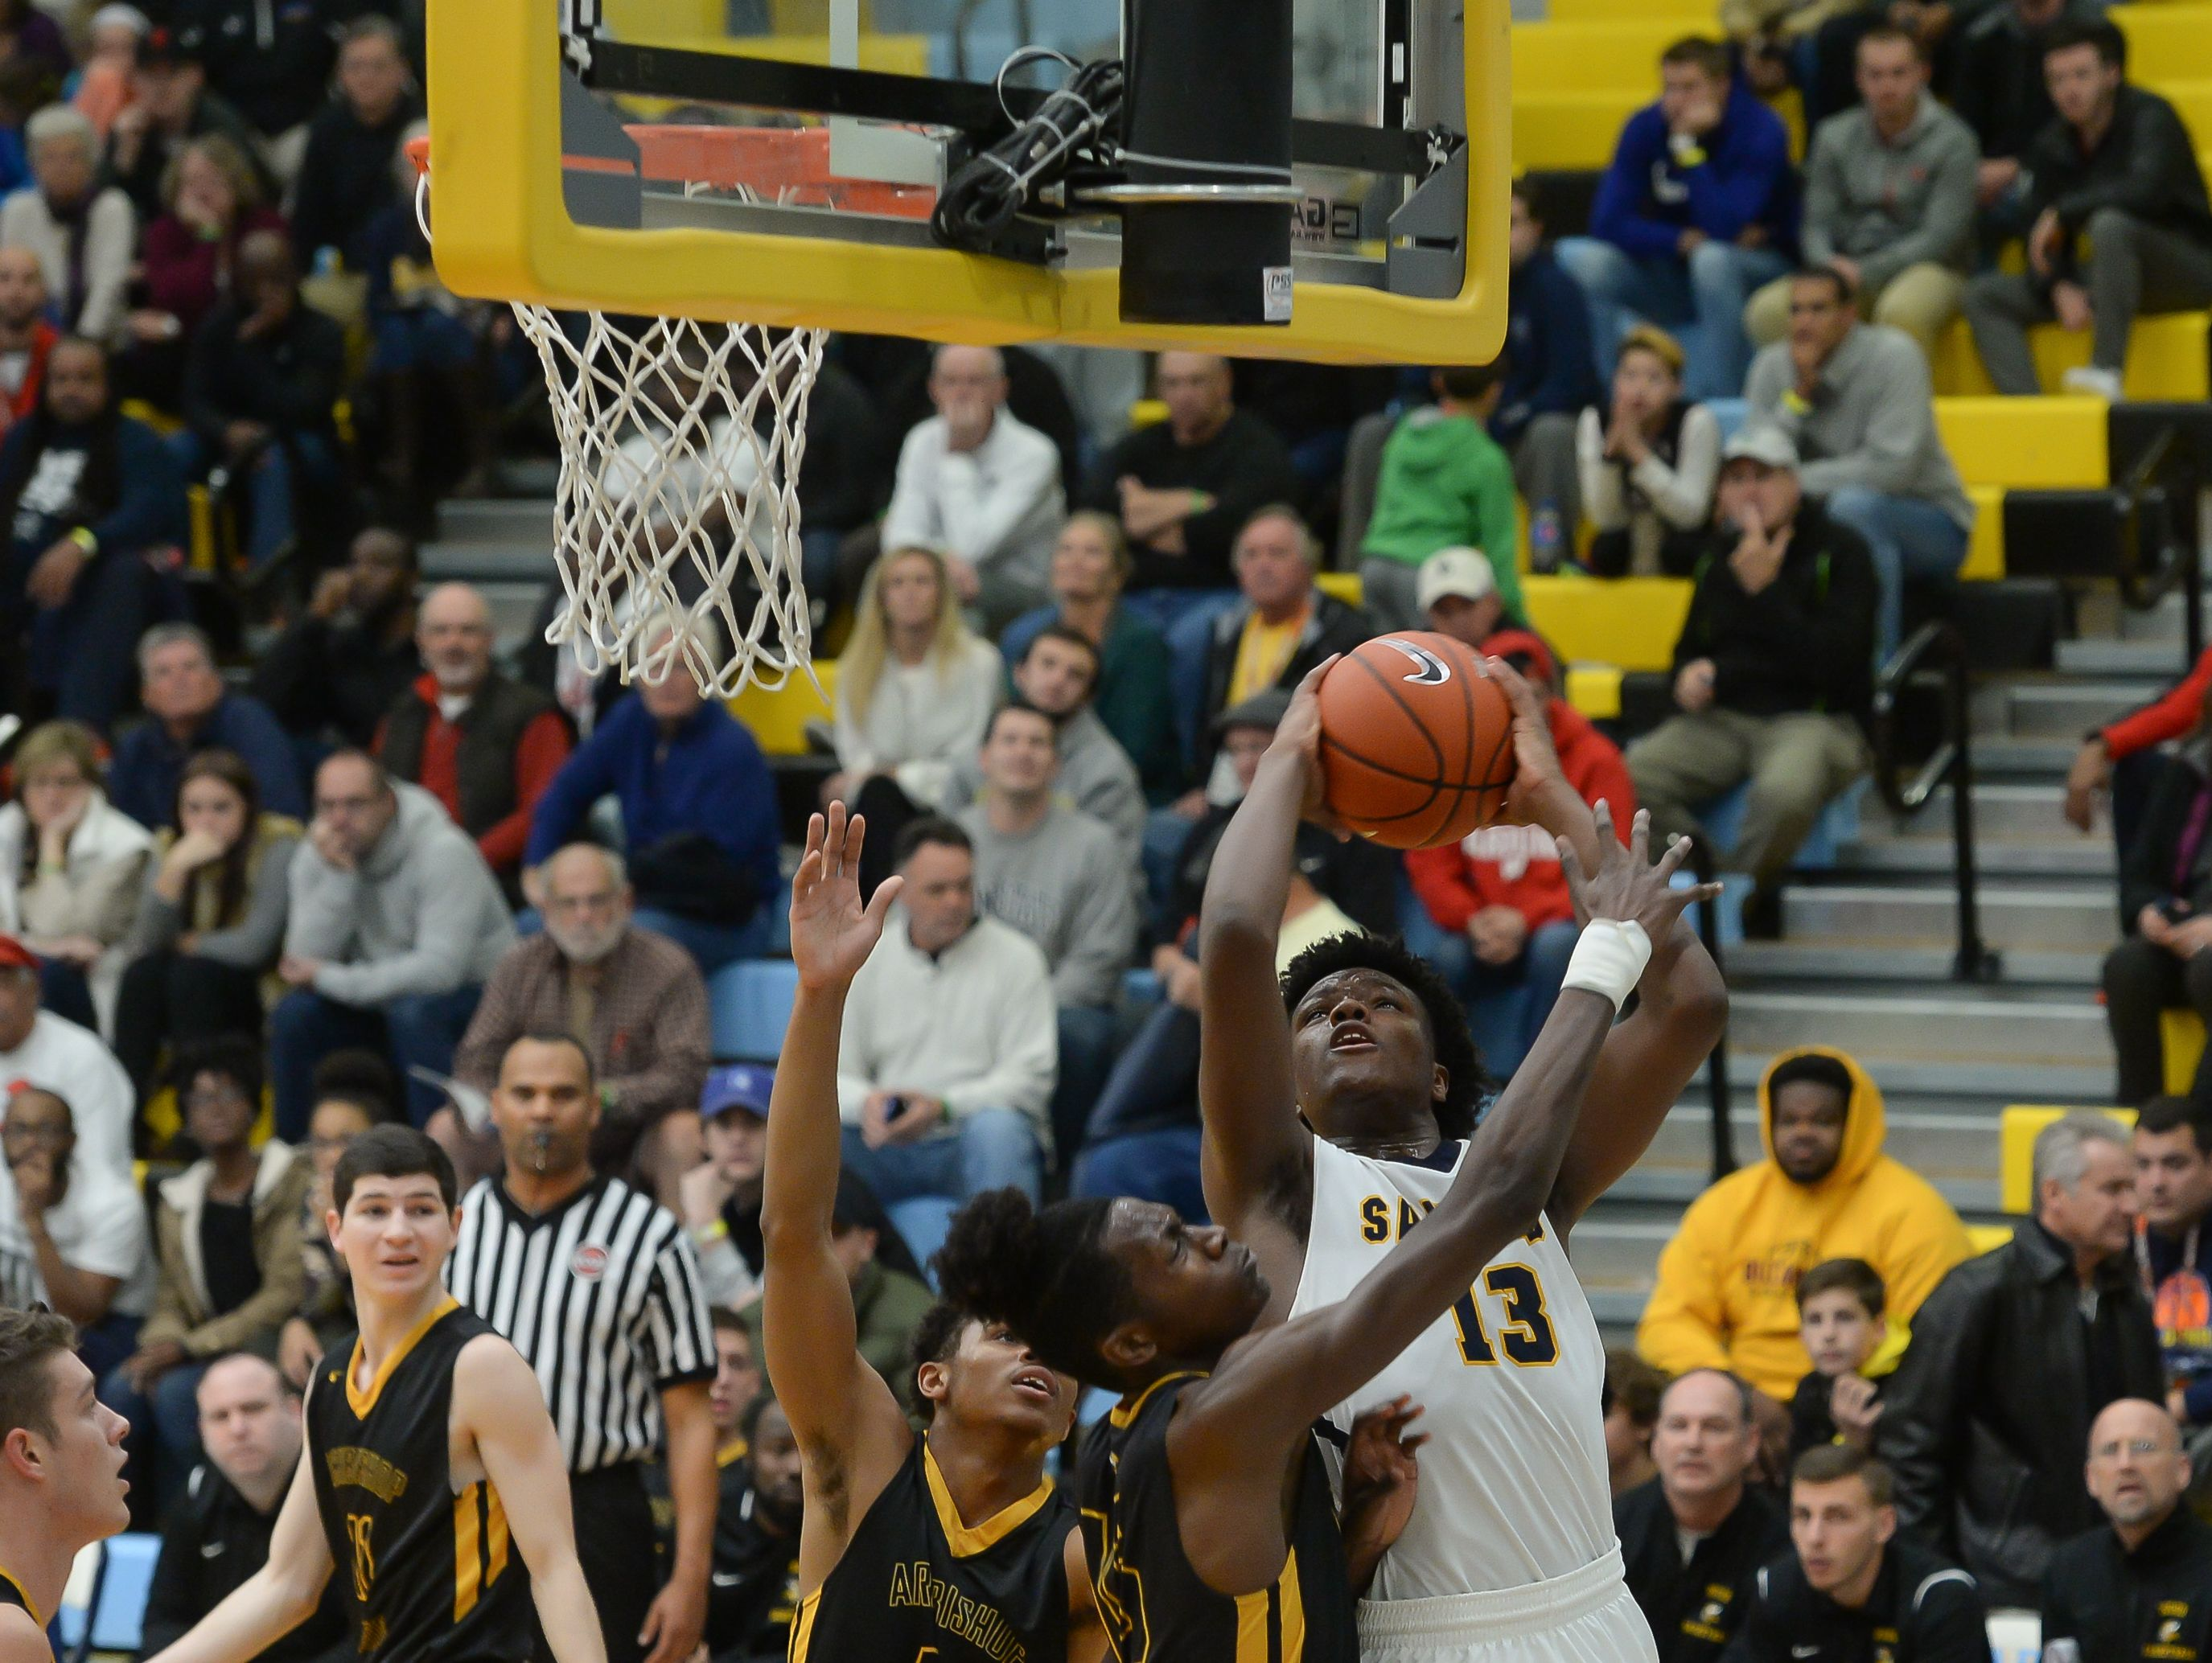 Sanford School's Jyare Davis with the jumper against Archbishop Wood during the Slam Dunk to the Beach on Wednesday, Dec 28, 2016. Final Score Sanford School- 47 ,Archbishop Wood- 72